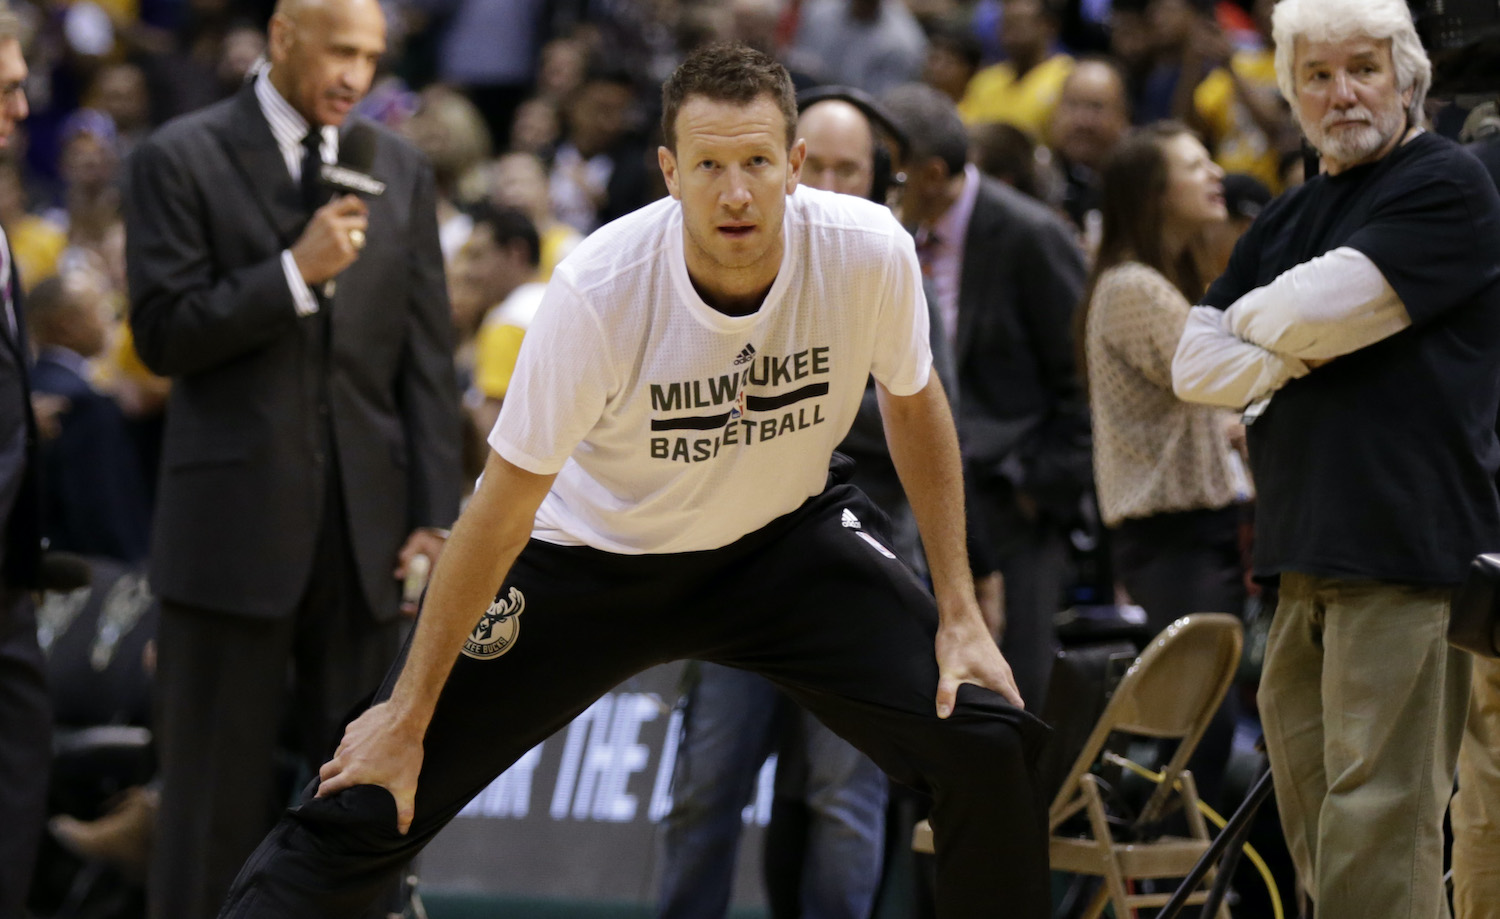 MILWAUKEE, WI - FEBRUARY 22: Steve Novak #6 of the Milwaukee Bucks stretches before the game against the Los Angeles Lakers at BMO Harris Bradley Center on February 22, 2016 in Milwaukee, Wisconsin. NOTE TO USER: User expressly acknowledges and agrees that, by downloading and or using this photograph, User is consenting to the terms and conditions of the Getty Images License Agreement. (Photo by Mike McGinnis/Getty Images) *** Local Caption *** Steve Novak